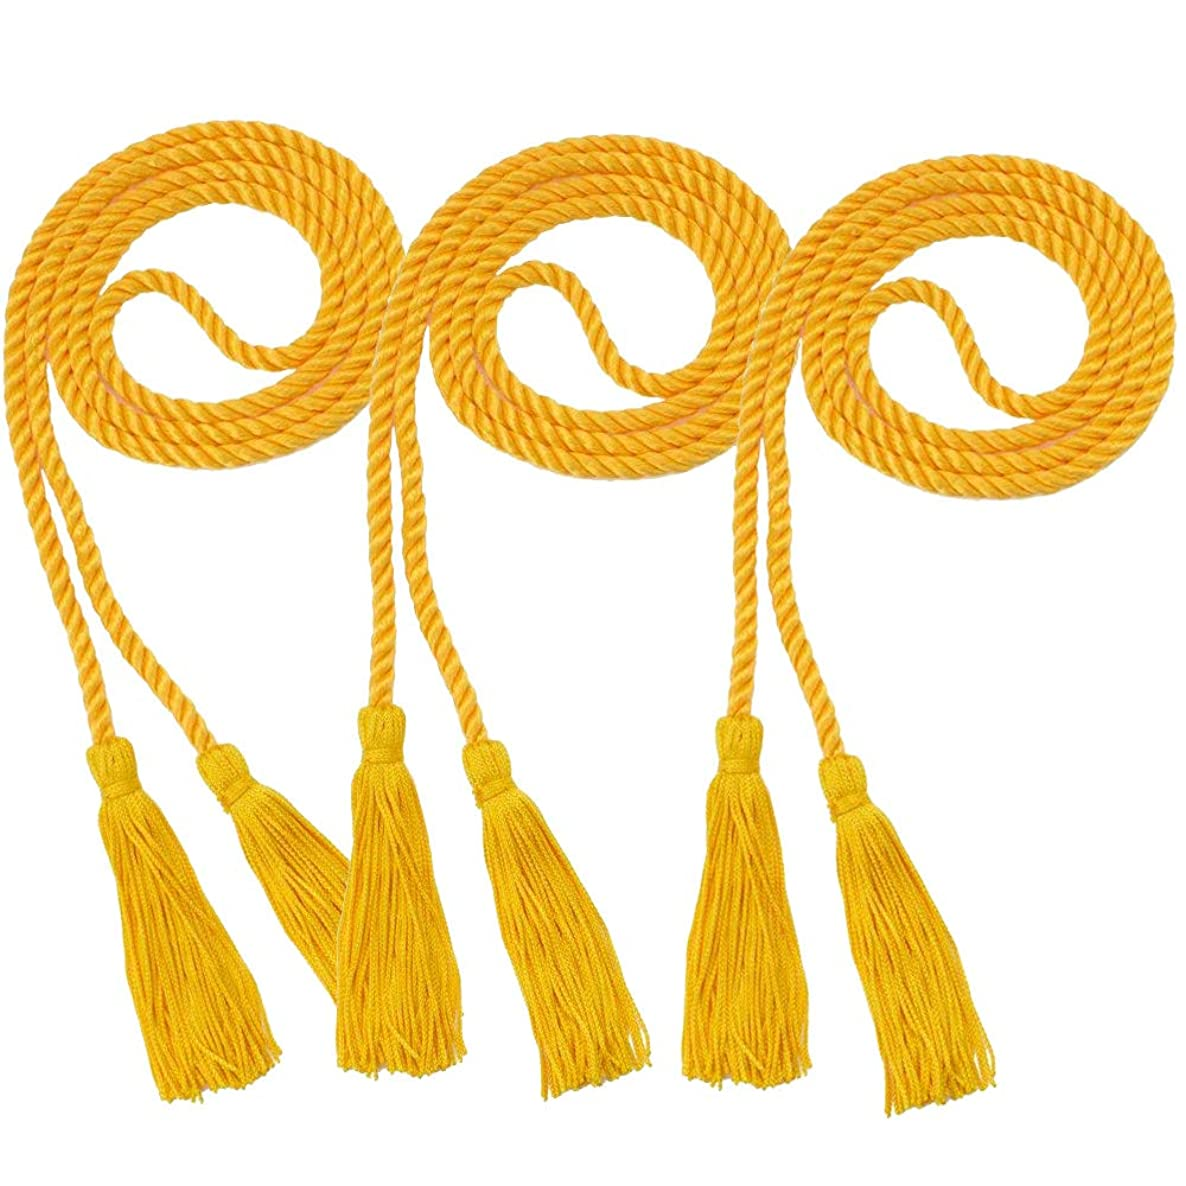 Xushop 3 Pack Graduation Honor Cords,Polyester Yarn Honor Cord with Tassel for Graduation Students for Bachelor Gown (Gold)